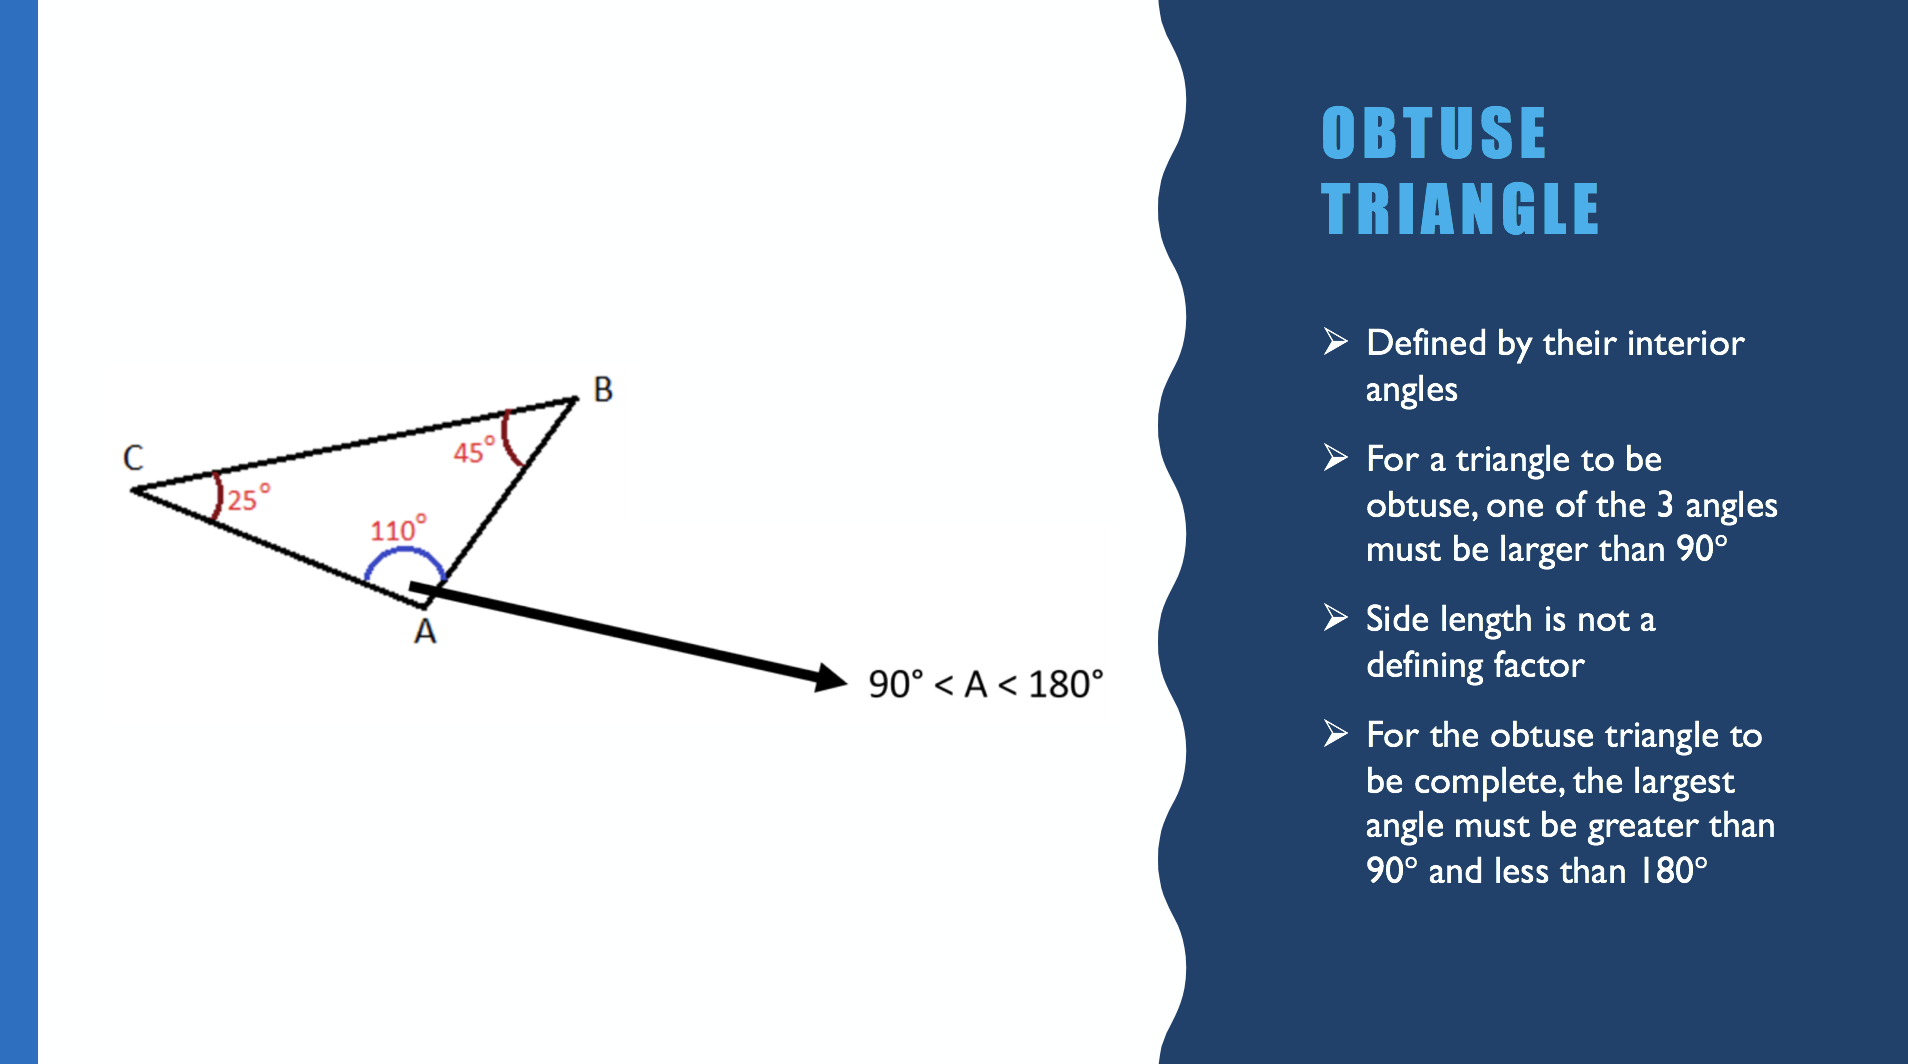 Pin By Sasha Paulin On Triangles And Quadrilaterals Draft